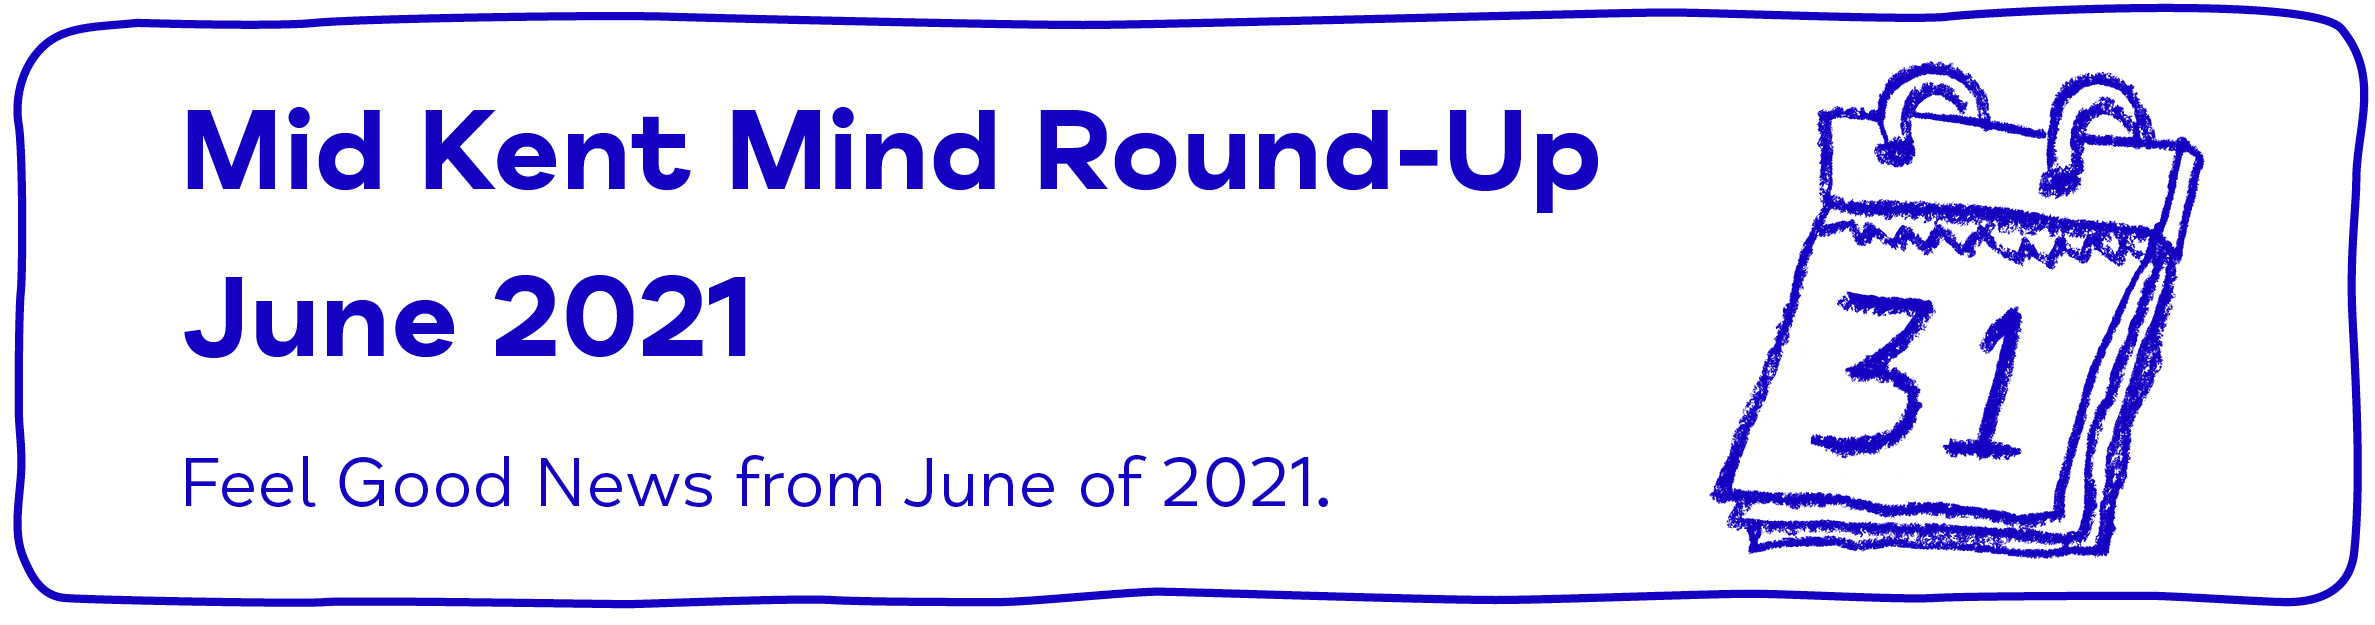 Mid Kent Mind Round-Up June 2021 Feel Good News from May of 2021 - Mid Kent Mind Newsletter - June 2021